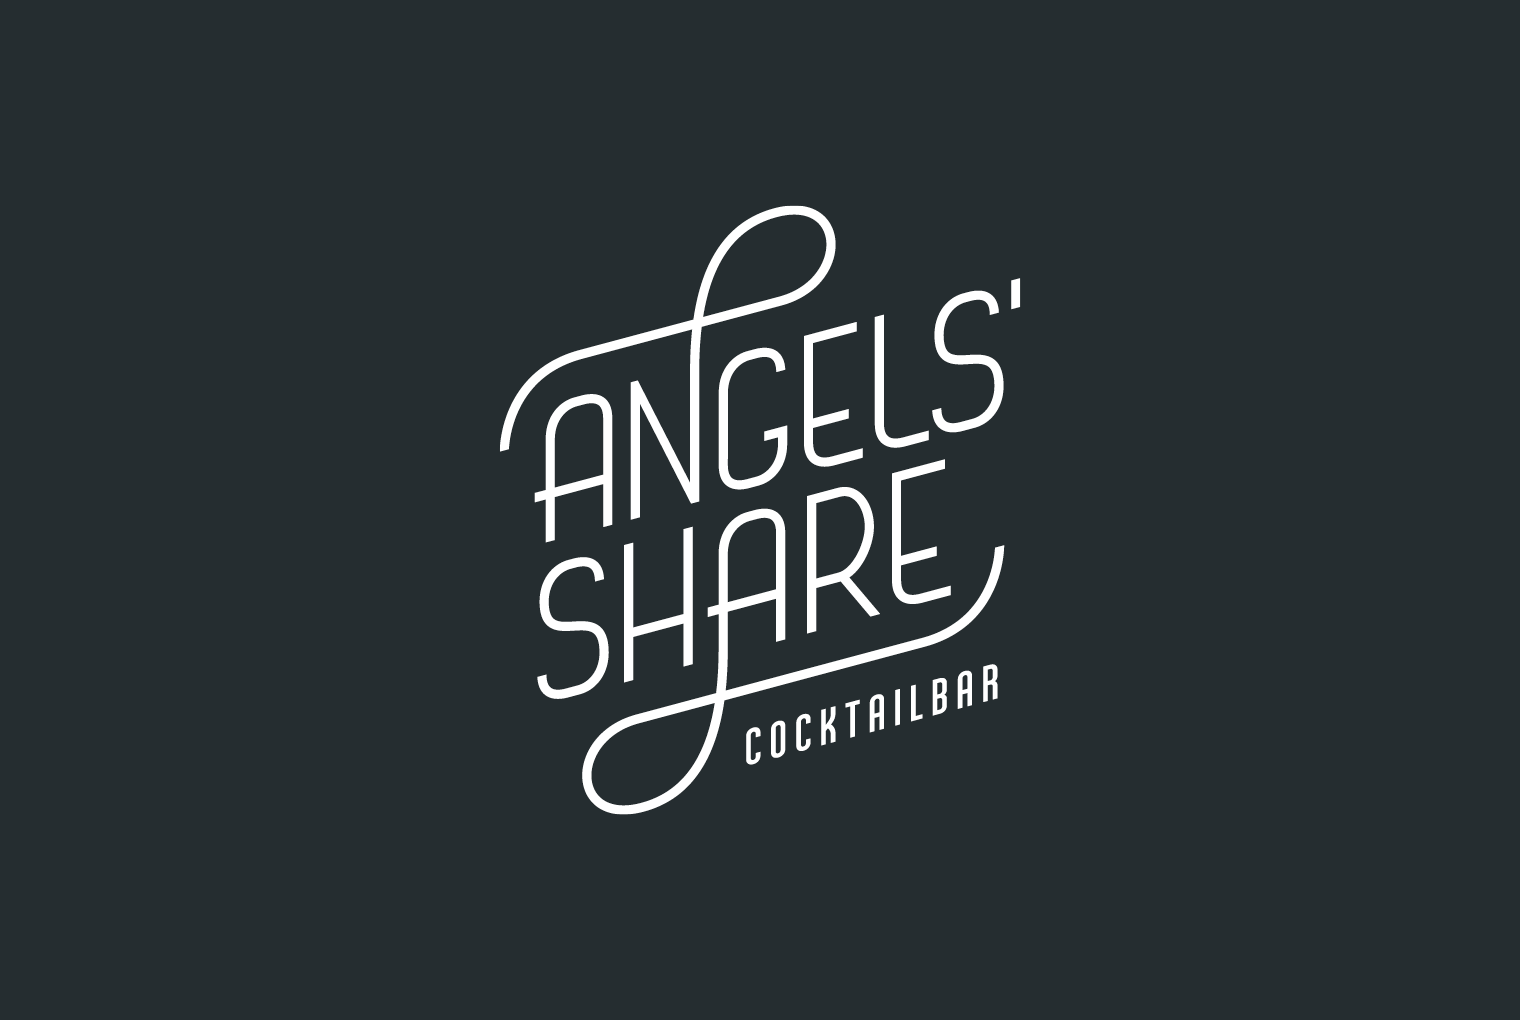 Logo_Angels_Share_Cocktailbar